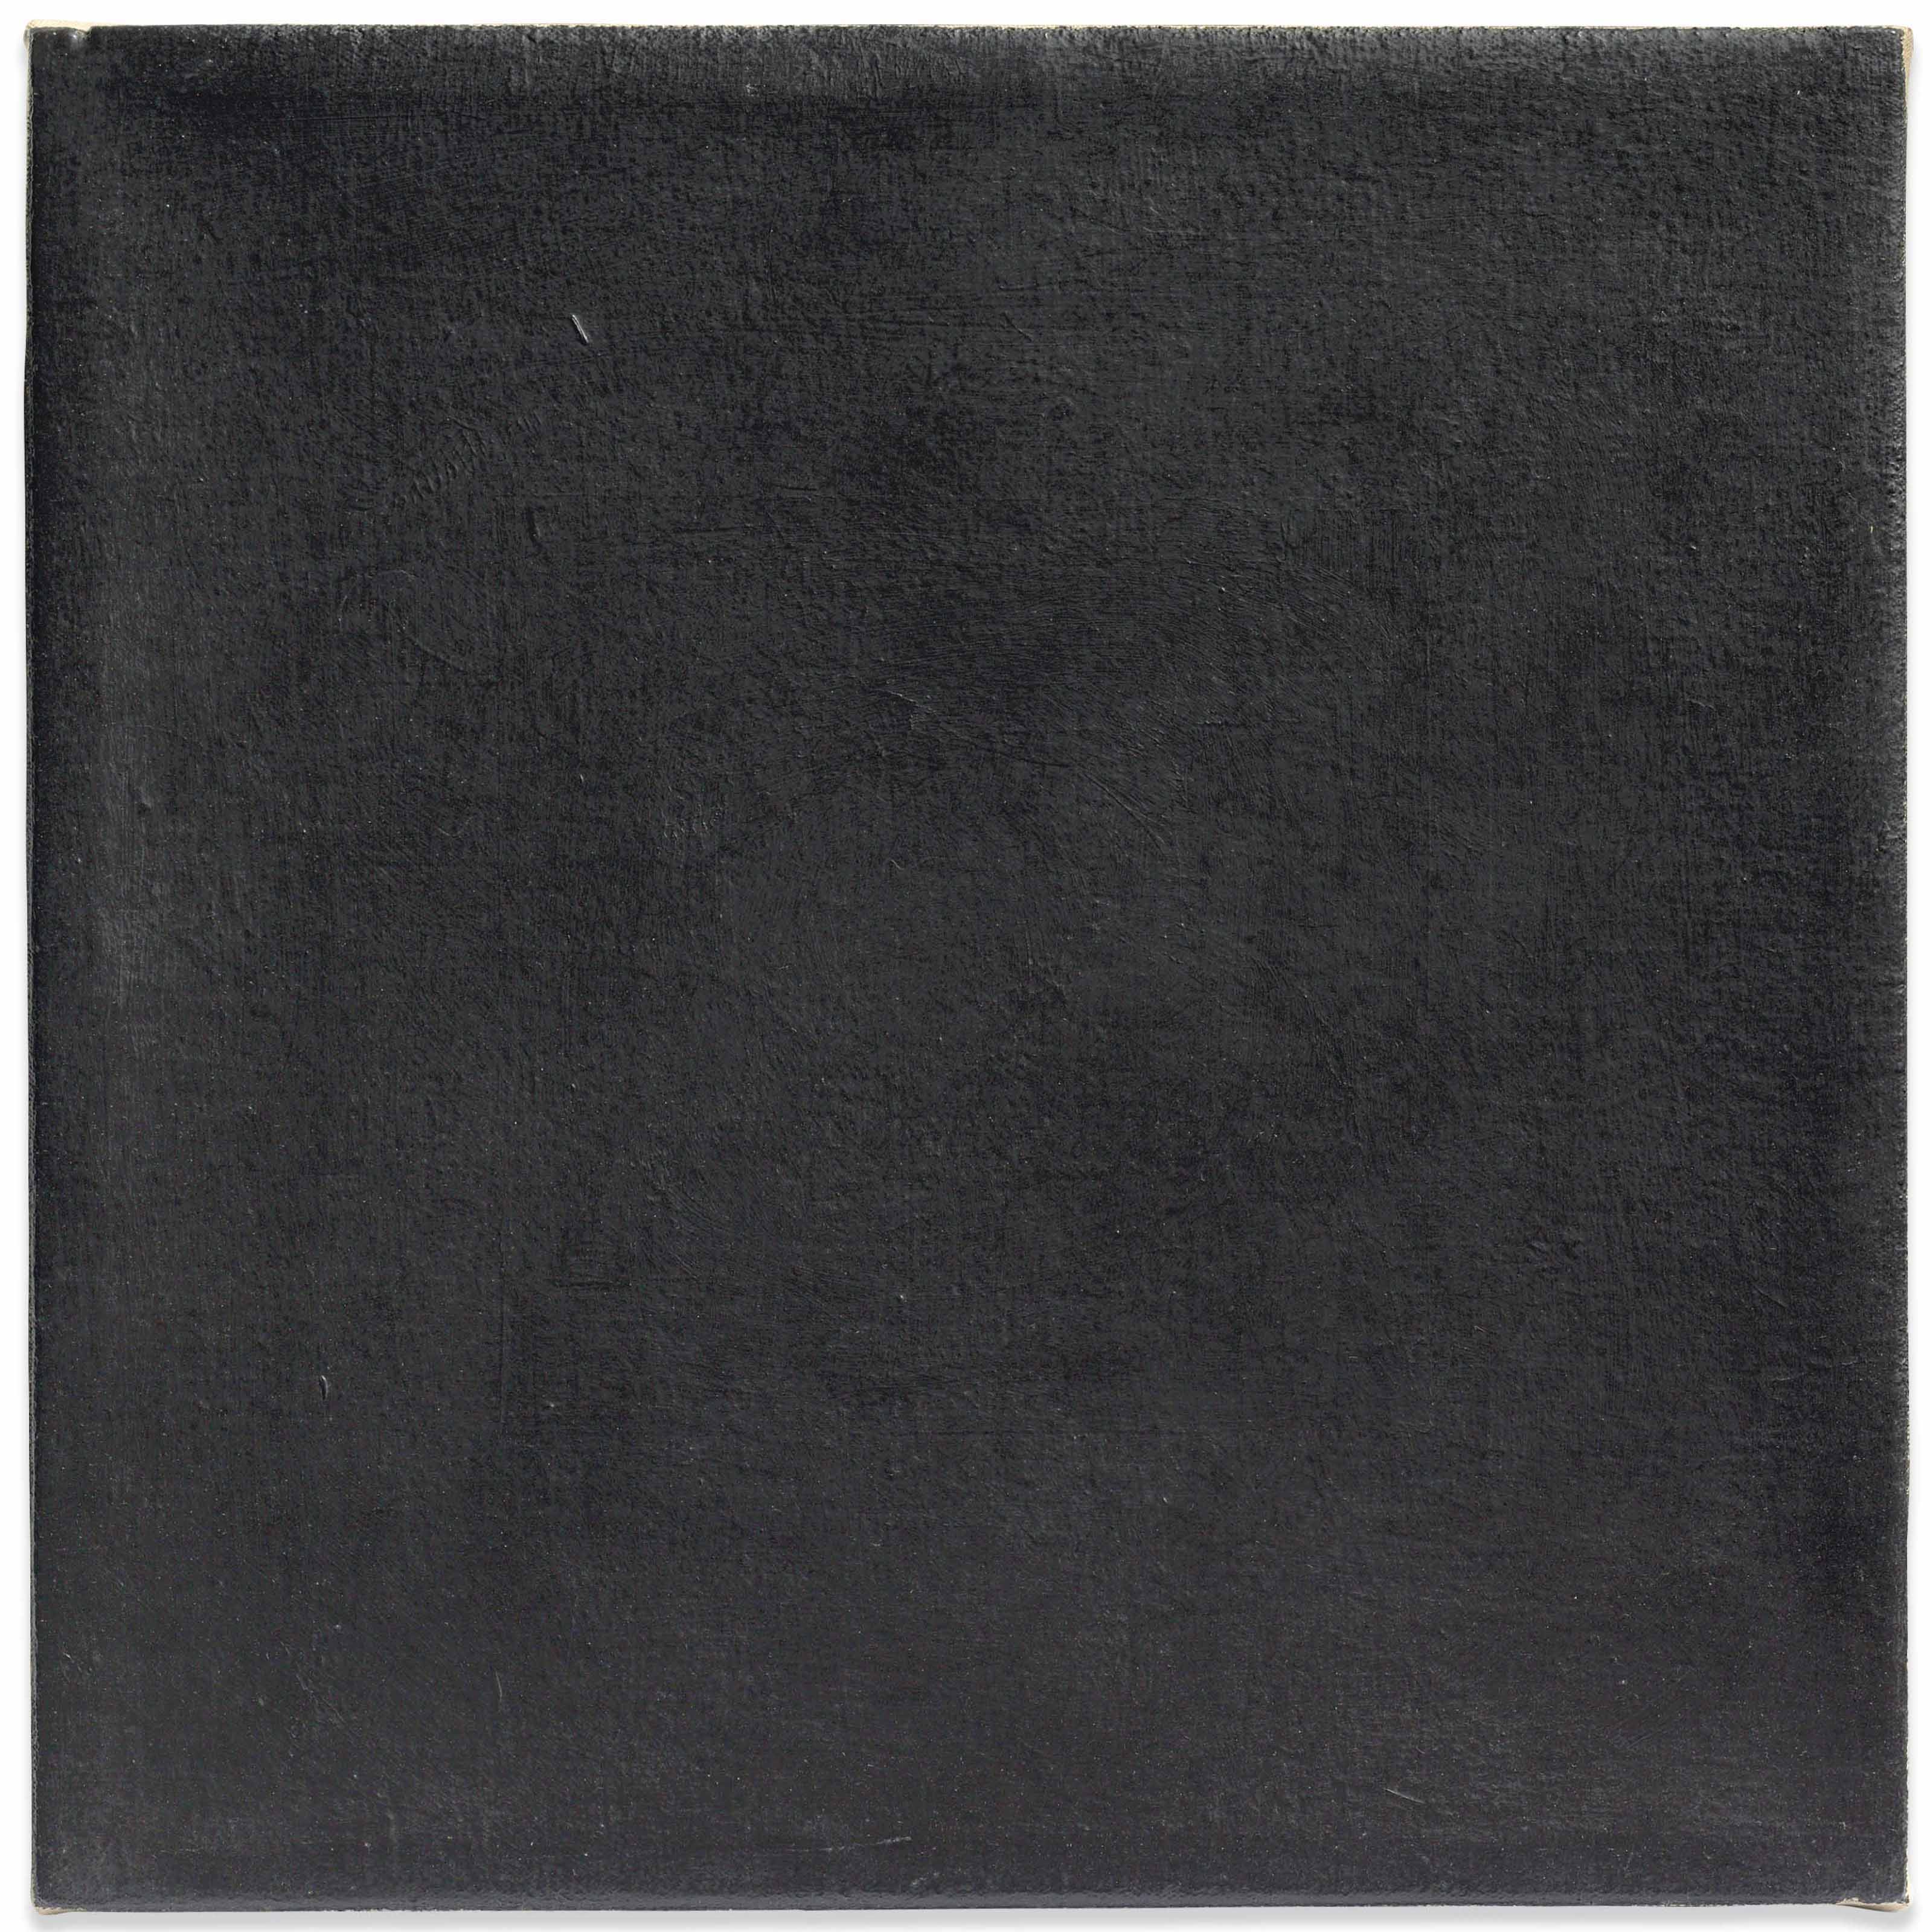 Two Black Squares – The Paradoxes of Absolute Zero